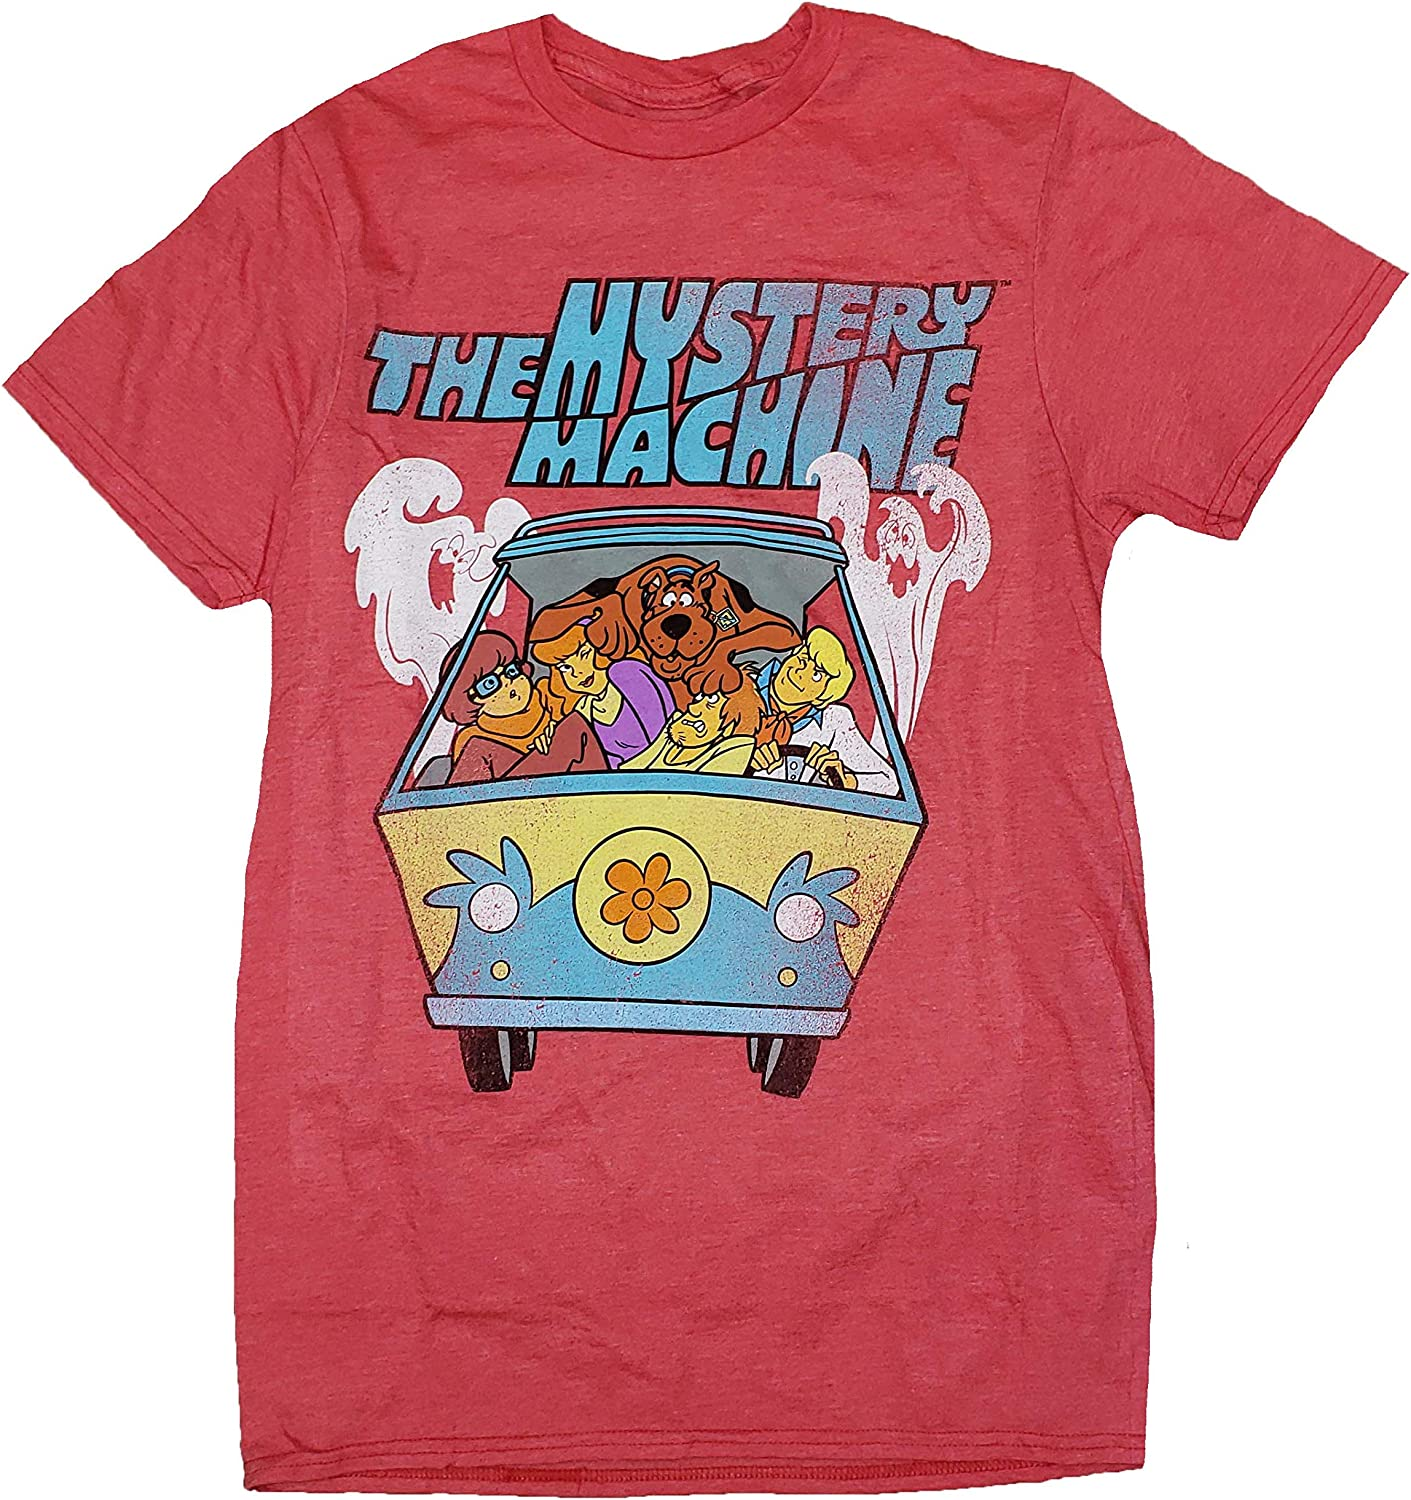 Scooby Doo The Mystery Machine Red Graphic T-Shirt